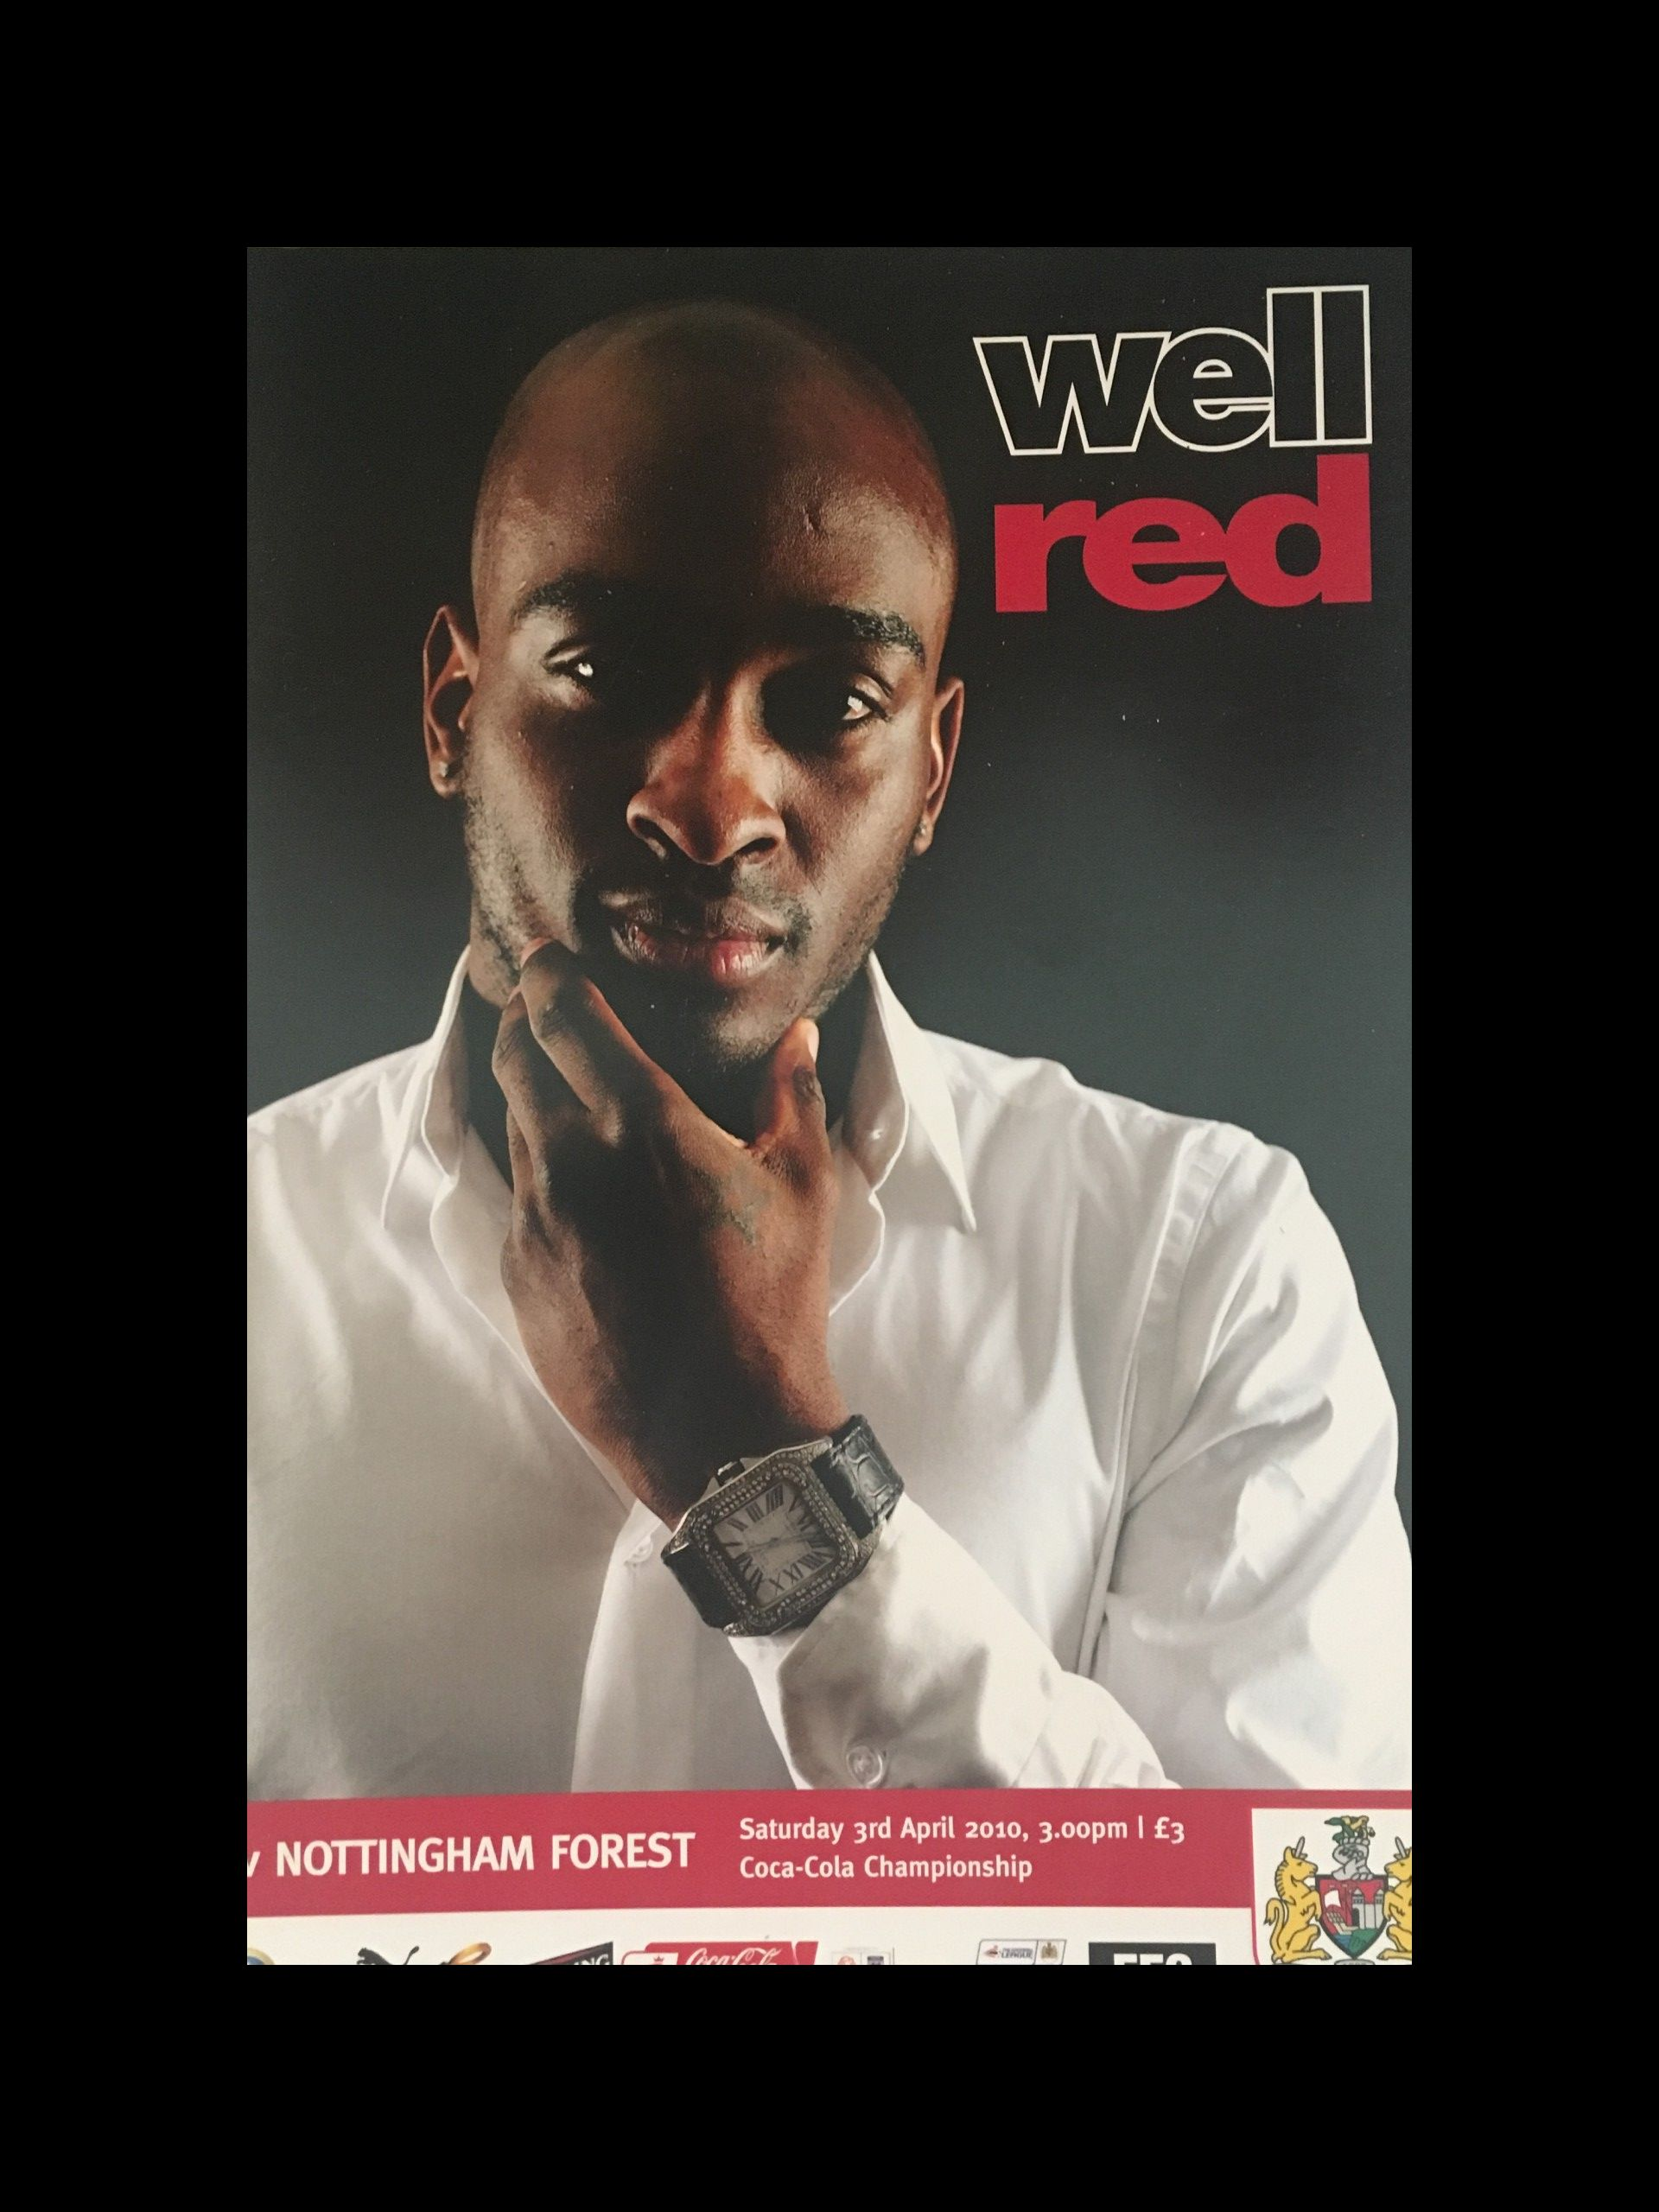 Bristol City v Nottingham Forest 03-04-2010 Programme